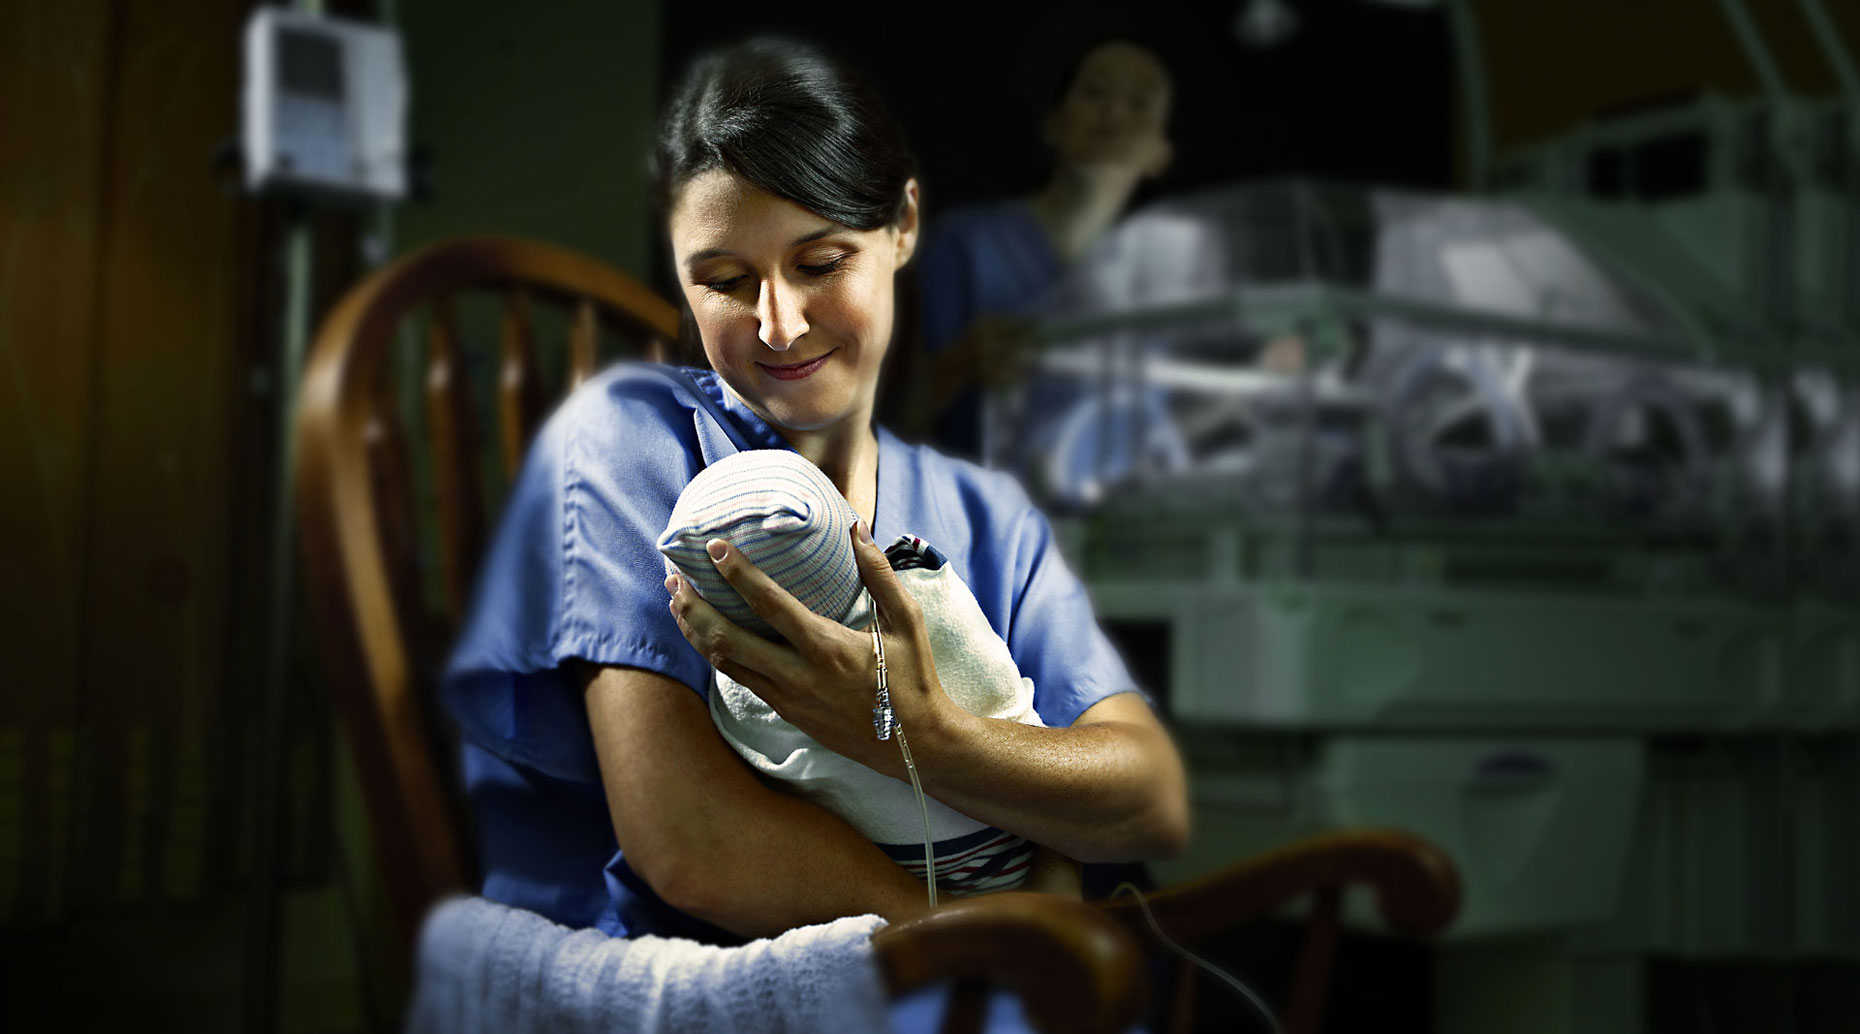 Nurse holding a baby in a hospital room.